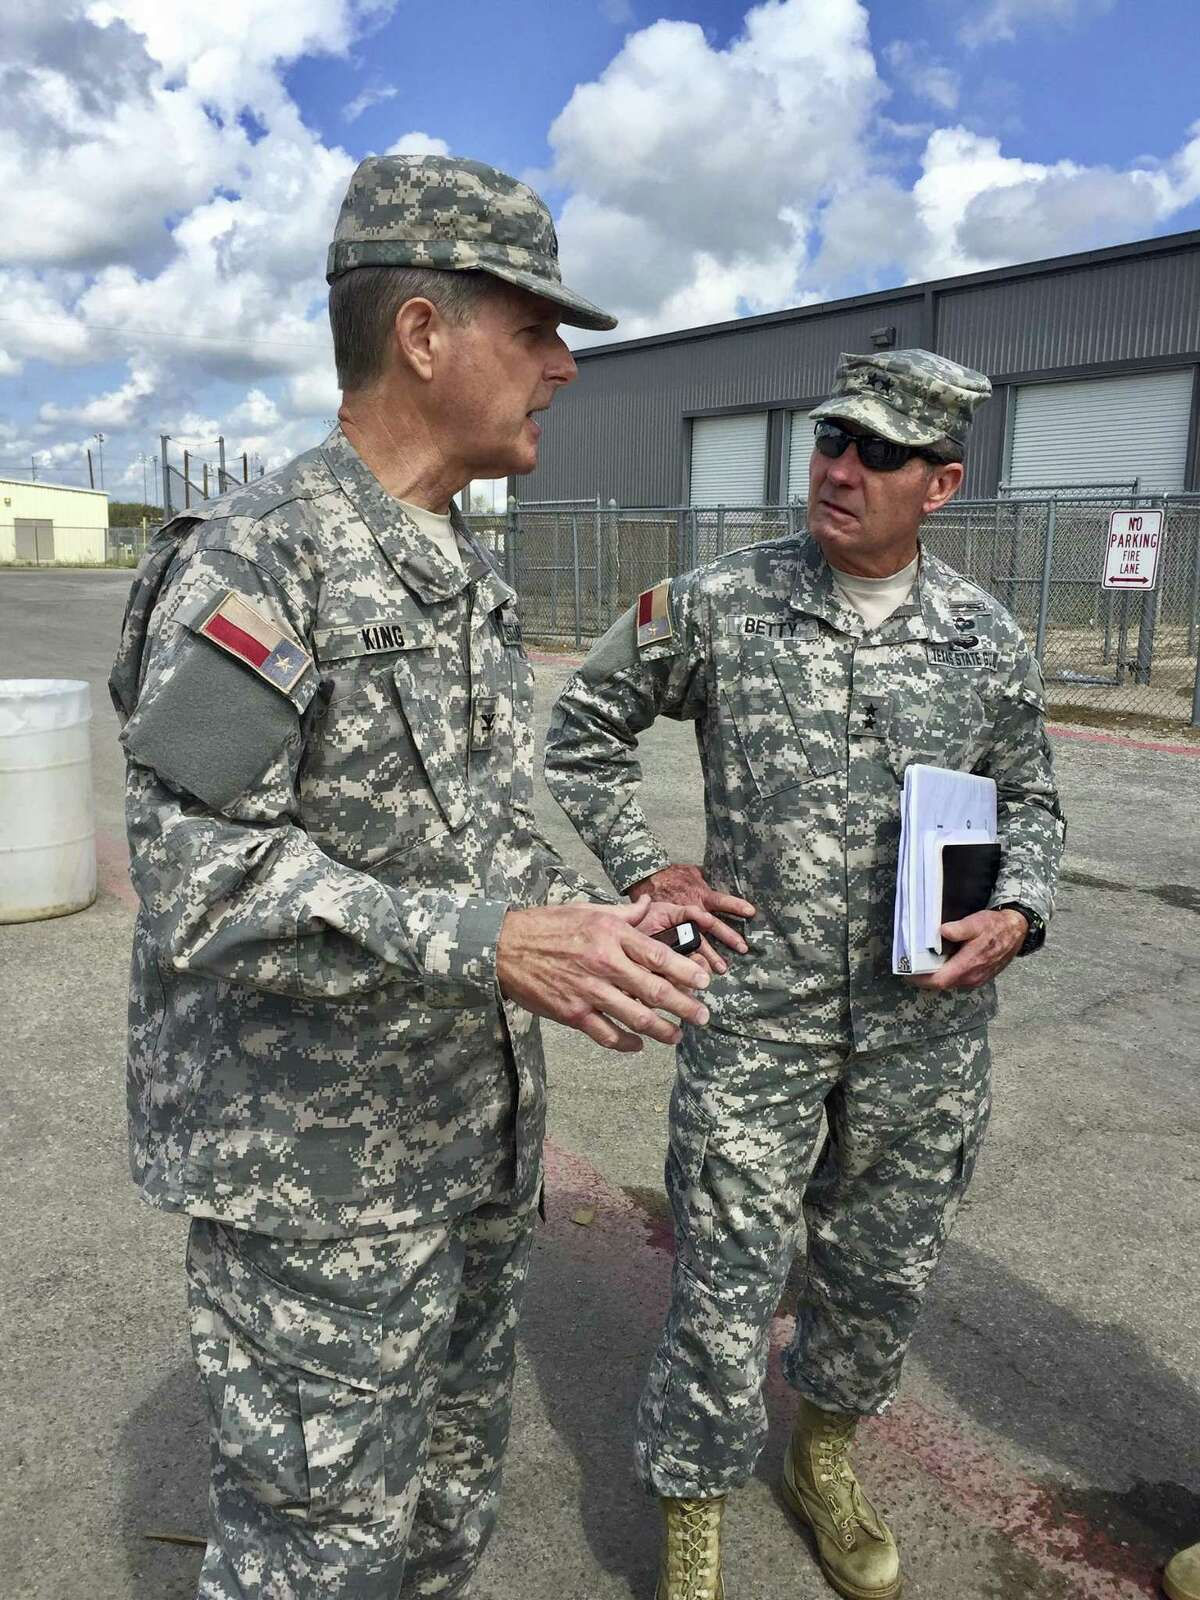 Col. Phil King (left), a Republican state representative from Weatherford, talks with Maj. Gen. Jake Betty on Wednesday at a food and water distribution center in Victoria. The Texas State Guard was called out to help in recovery efforts after Harvey laid waste to much of Southeast Texas.